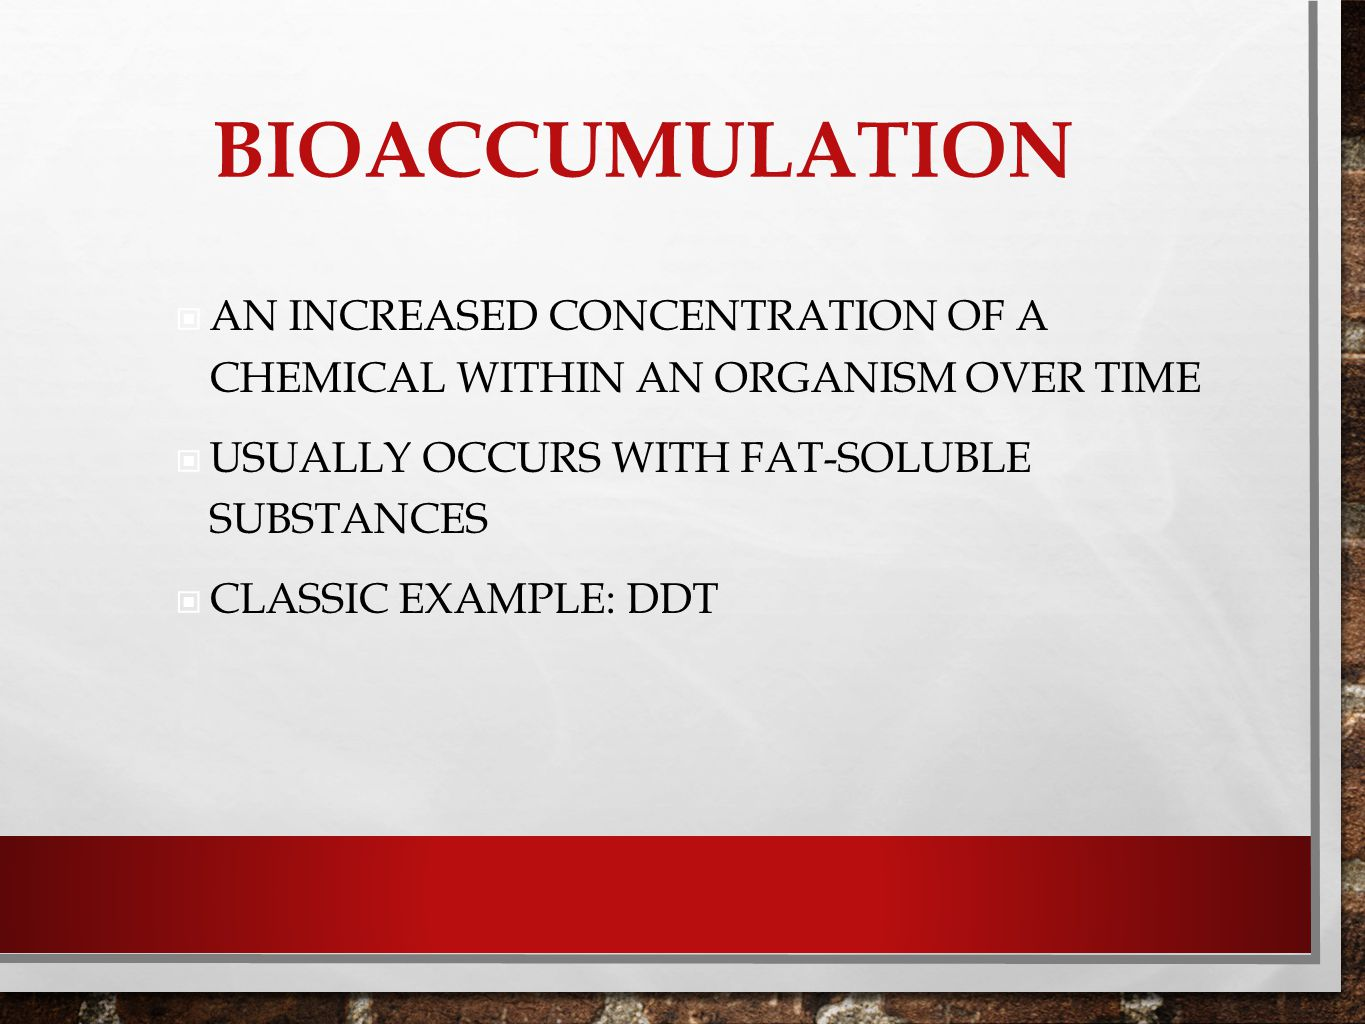 BIOACCUMULATION AN INCREASED CONCENTRATION OF A CHEMICAL WITHIN AN ORGANISM OVER TIME USUALLY OCCURS WITH FAT-SOLUBLE SUBSTANCES CLASSIC EXAMPLE: DDT